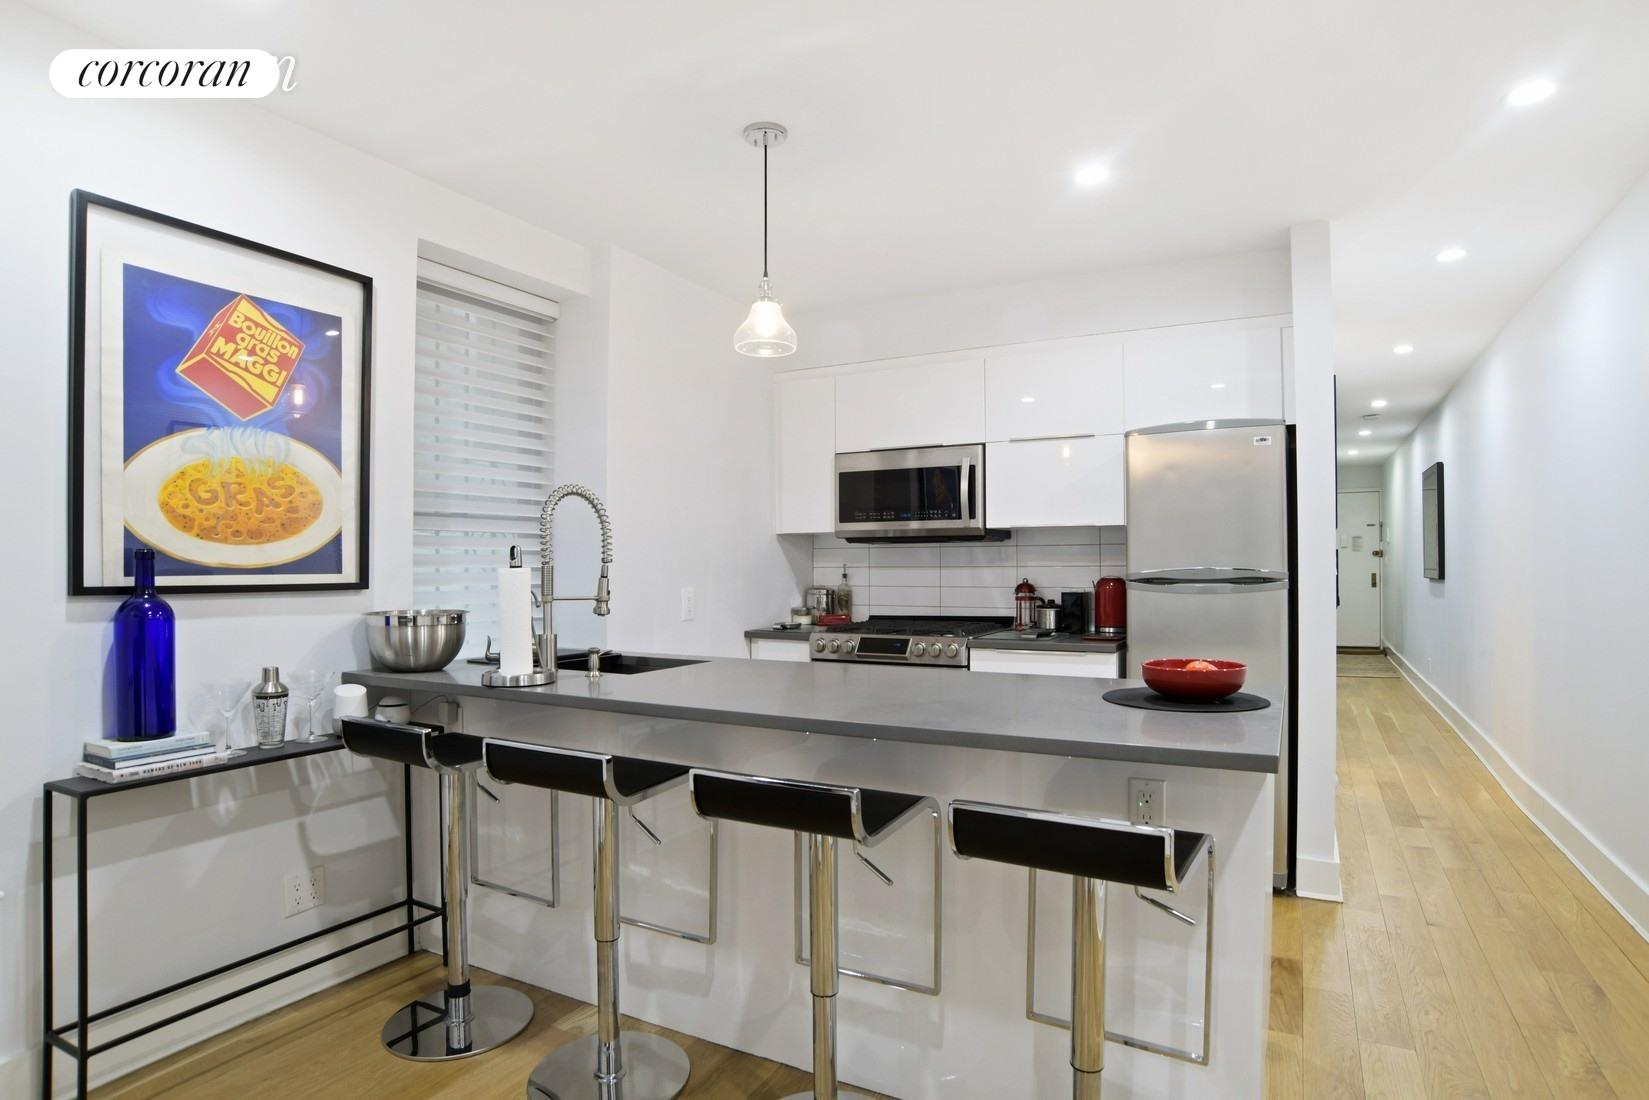 Corcoran, 213-215 Eastern Parkway, Prospect Heights Real Estate ...